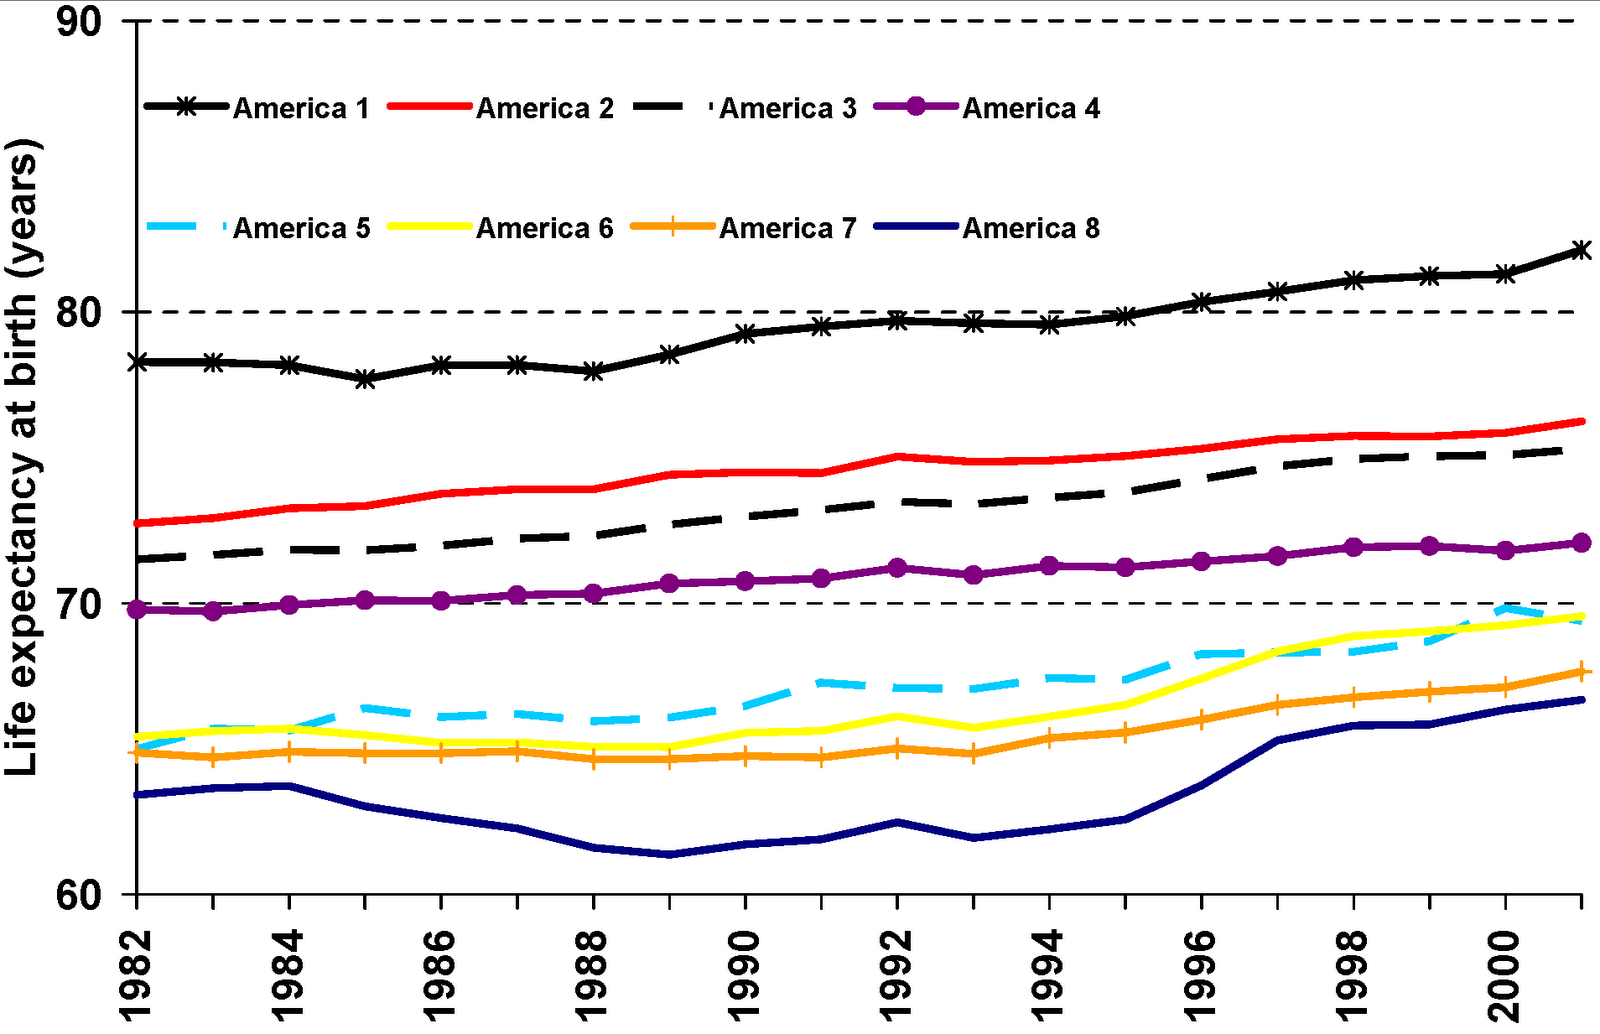 an introduction to the issue of infant mortality in the united states Free essay: newborn mortality rates in ghana and the united states today introduction it is frequently been suggested that the infant mortality rate (imr) is.